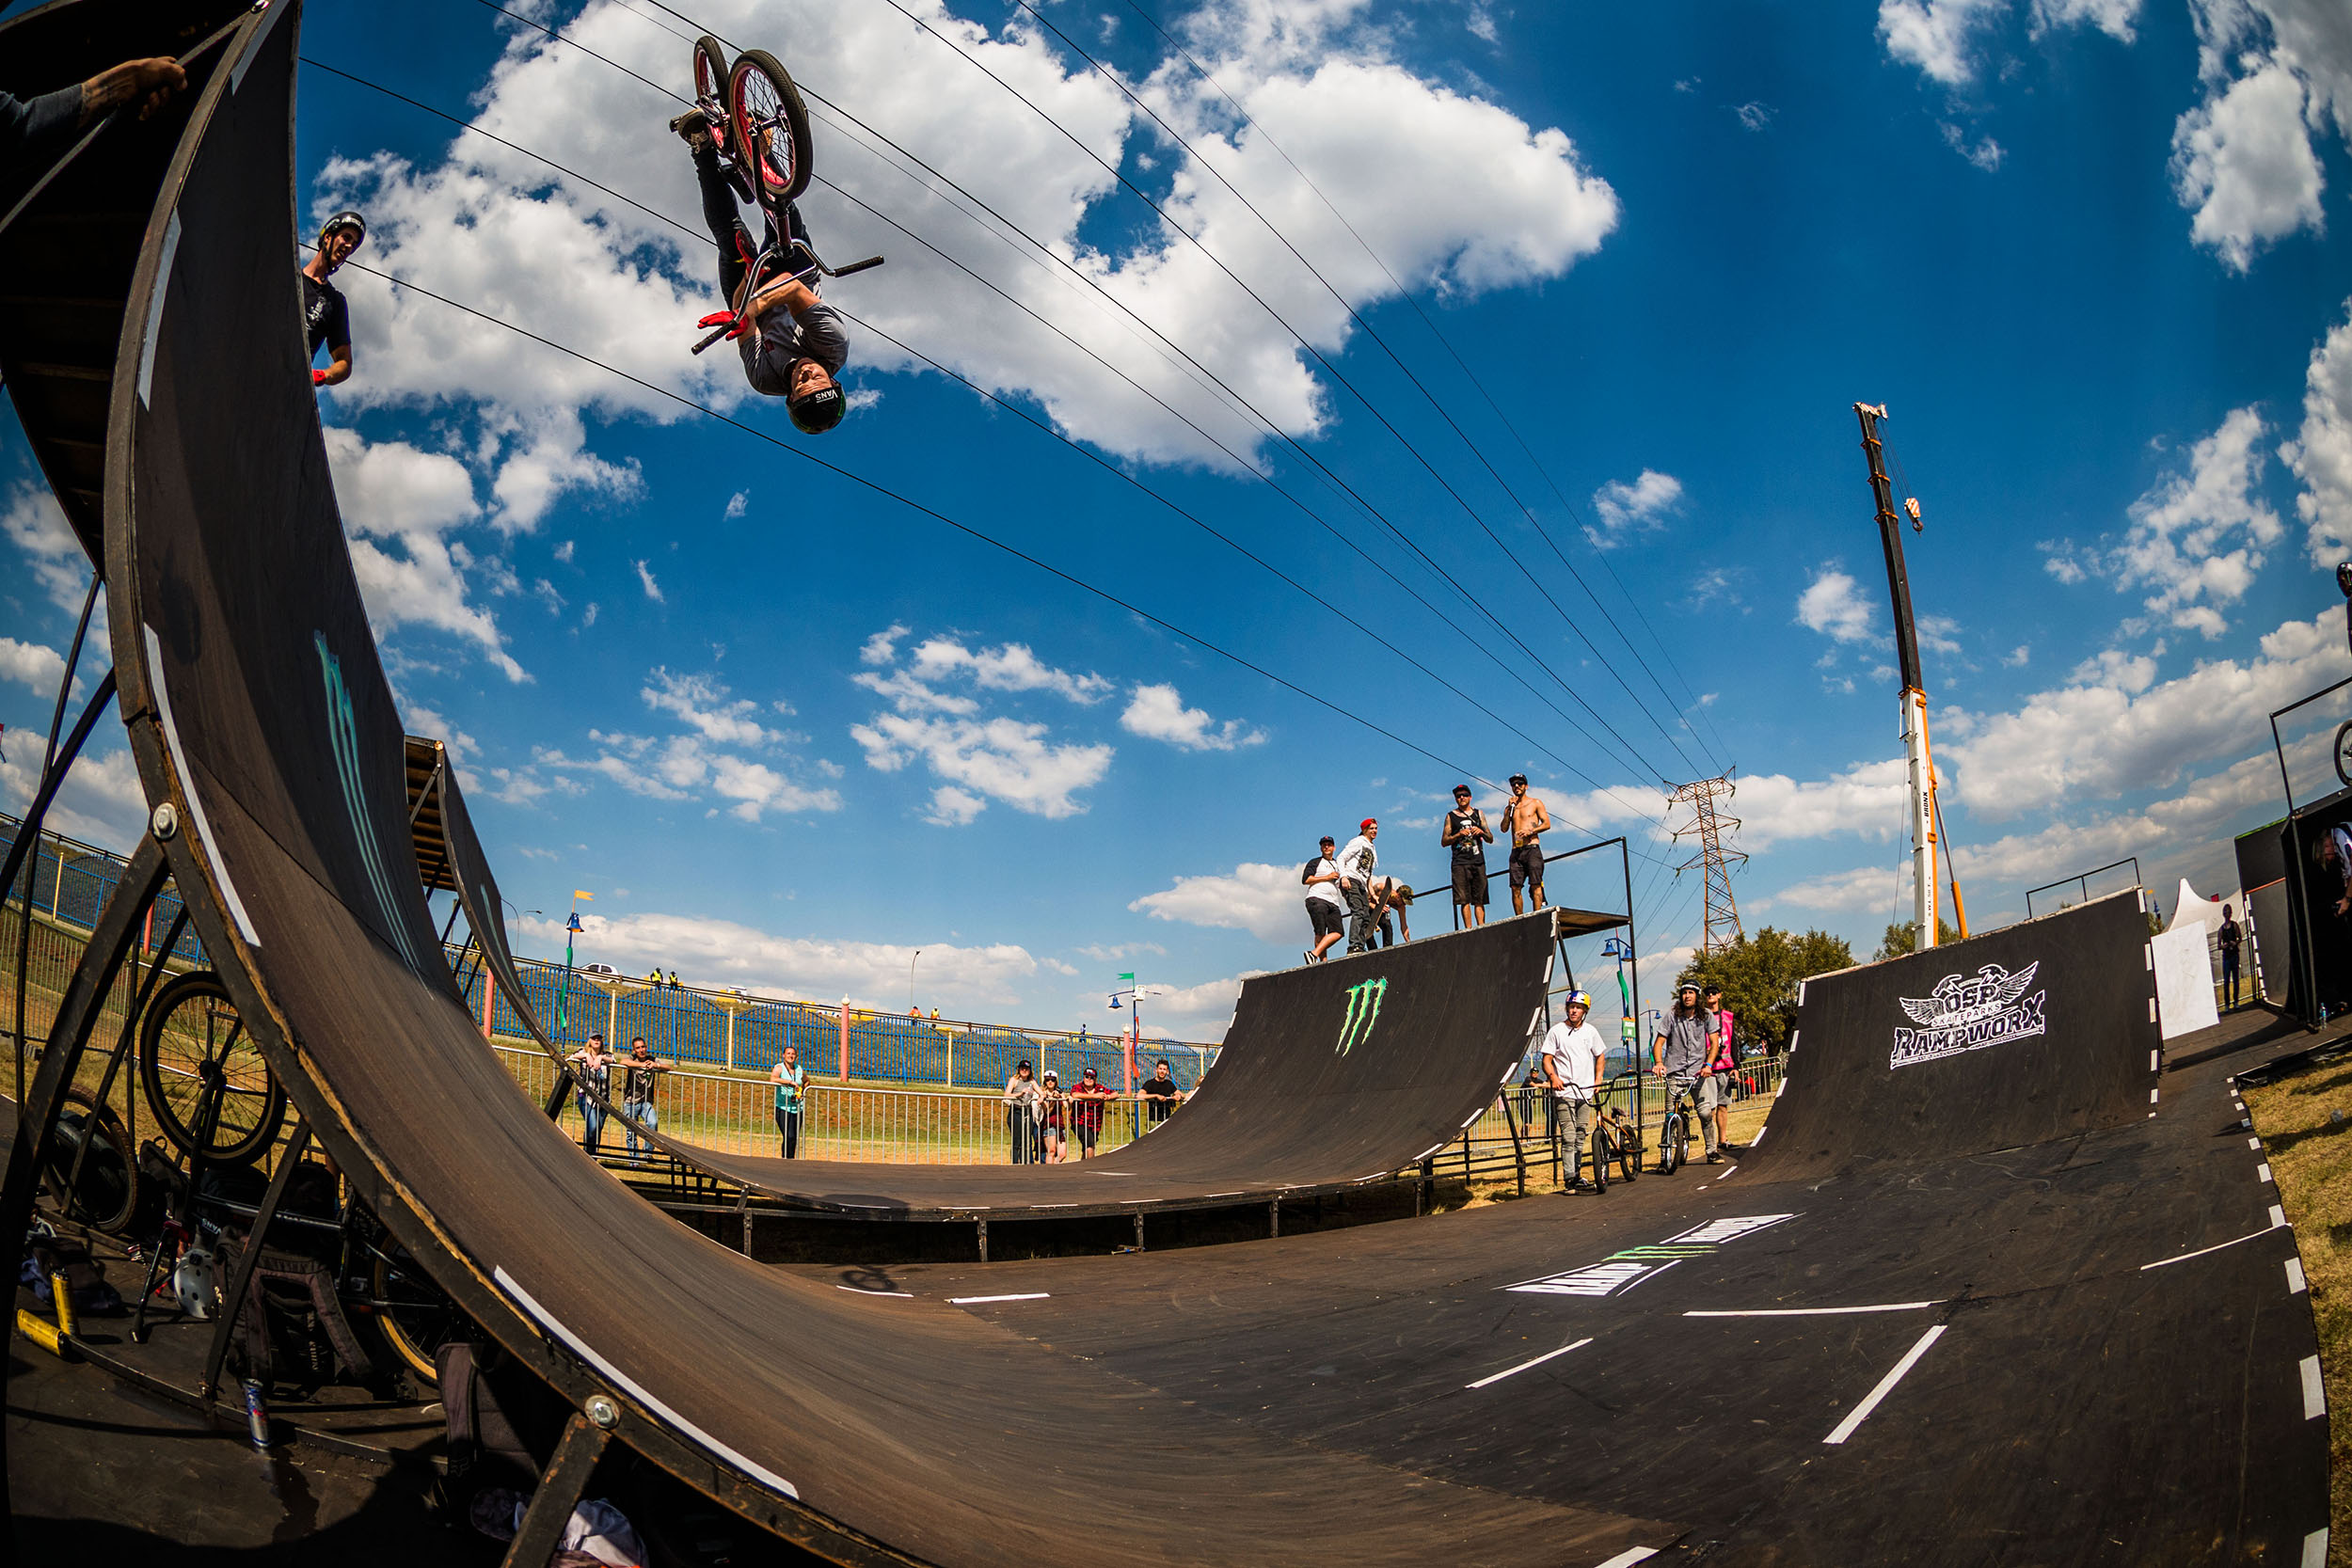 Malcom Peters taking the BMX win at stop 3 of the Ramp Rodeo Invitational